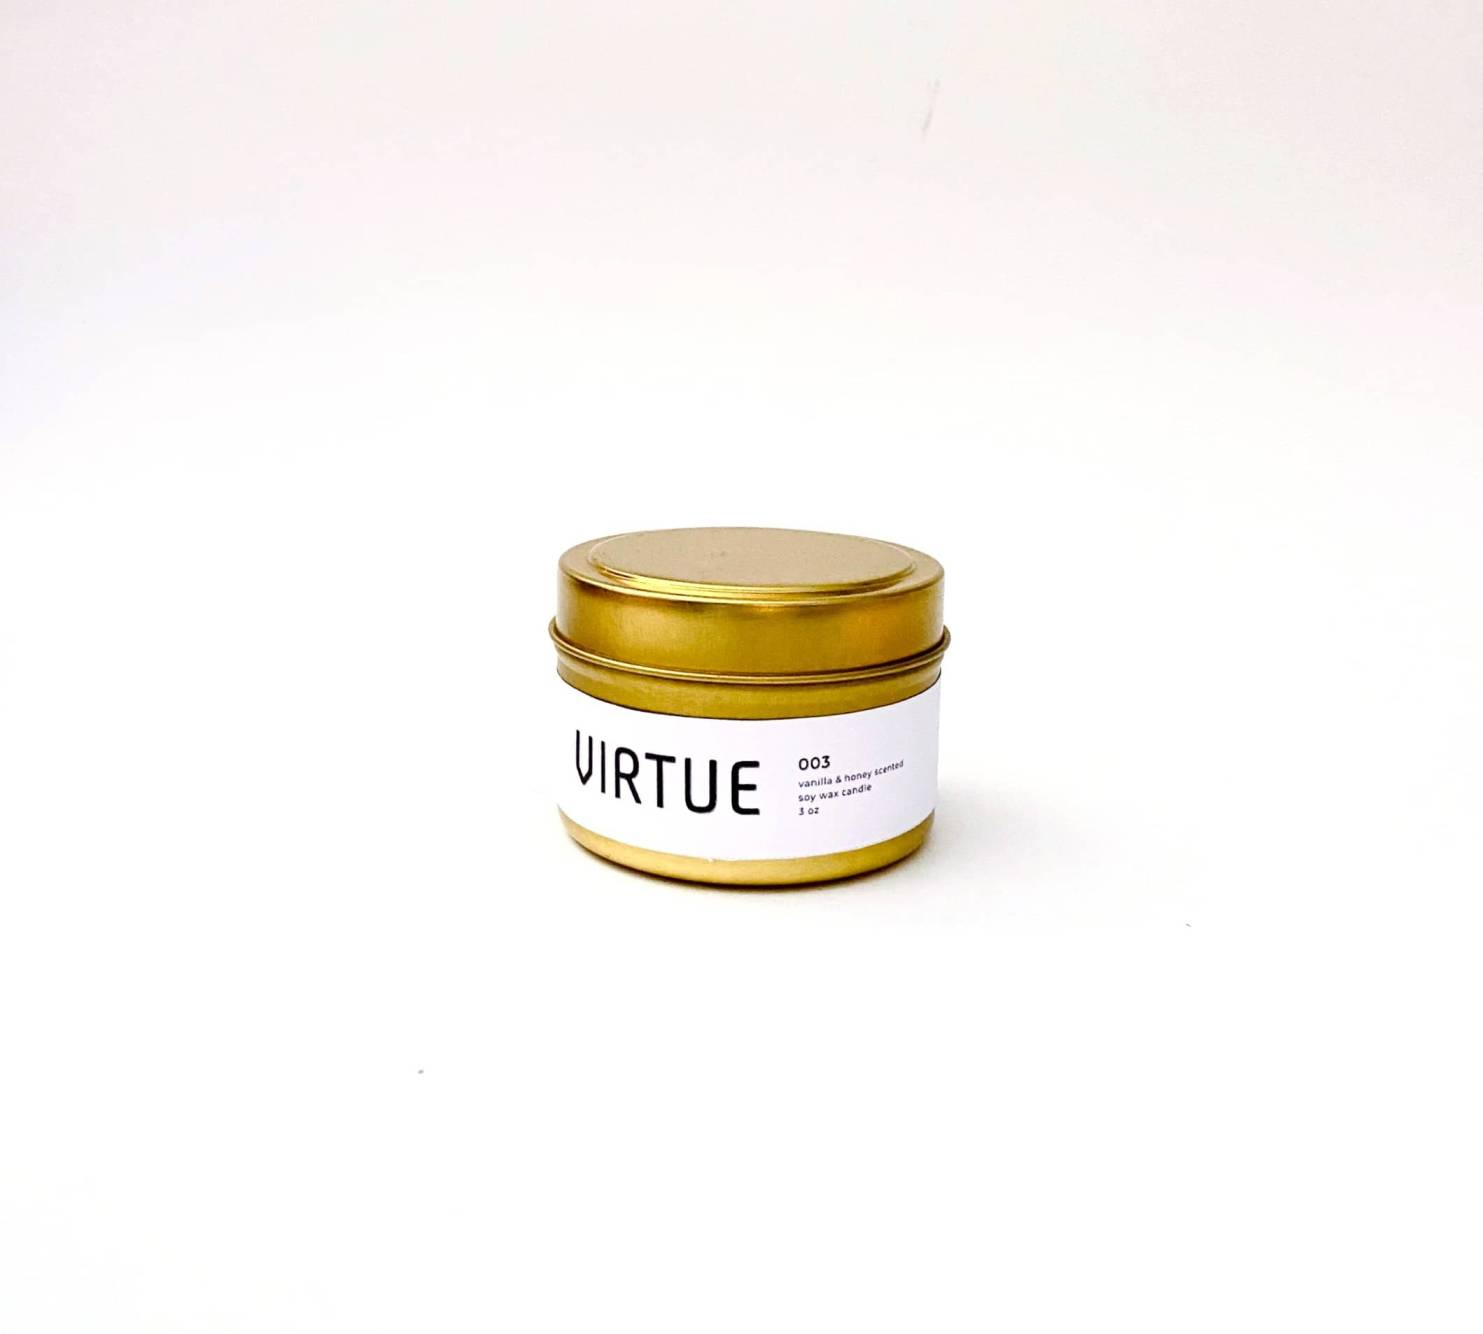 Virtue Essentials - Mini Candle - Issue 001 - white tea, rosemary, and coconut